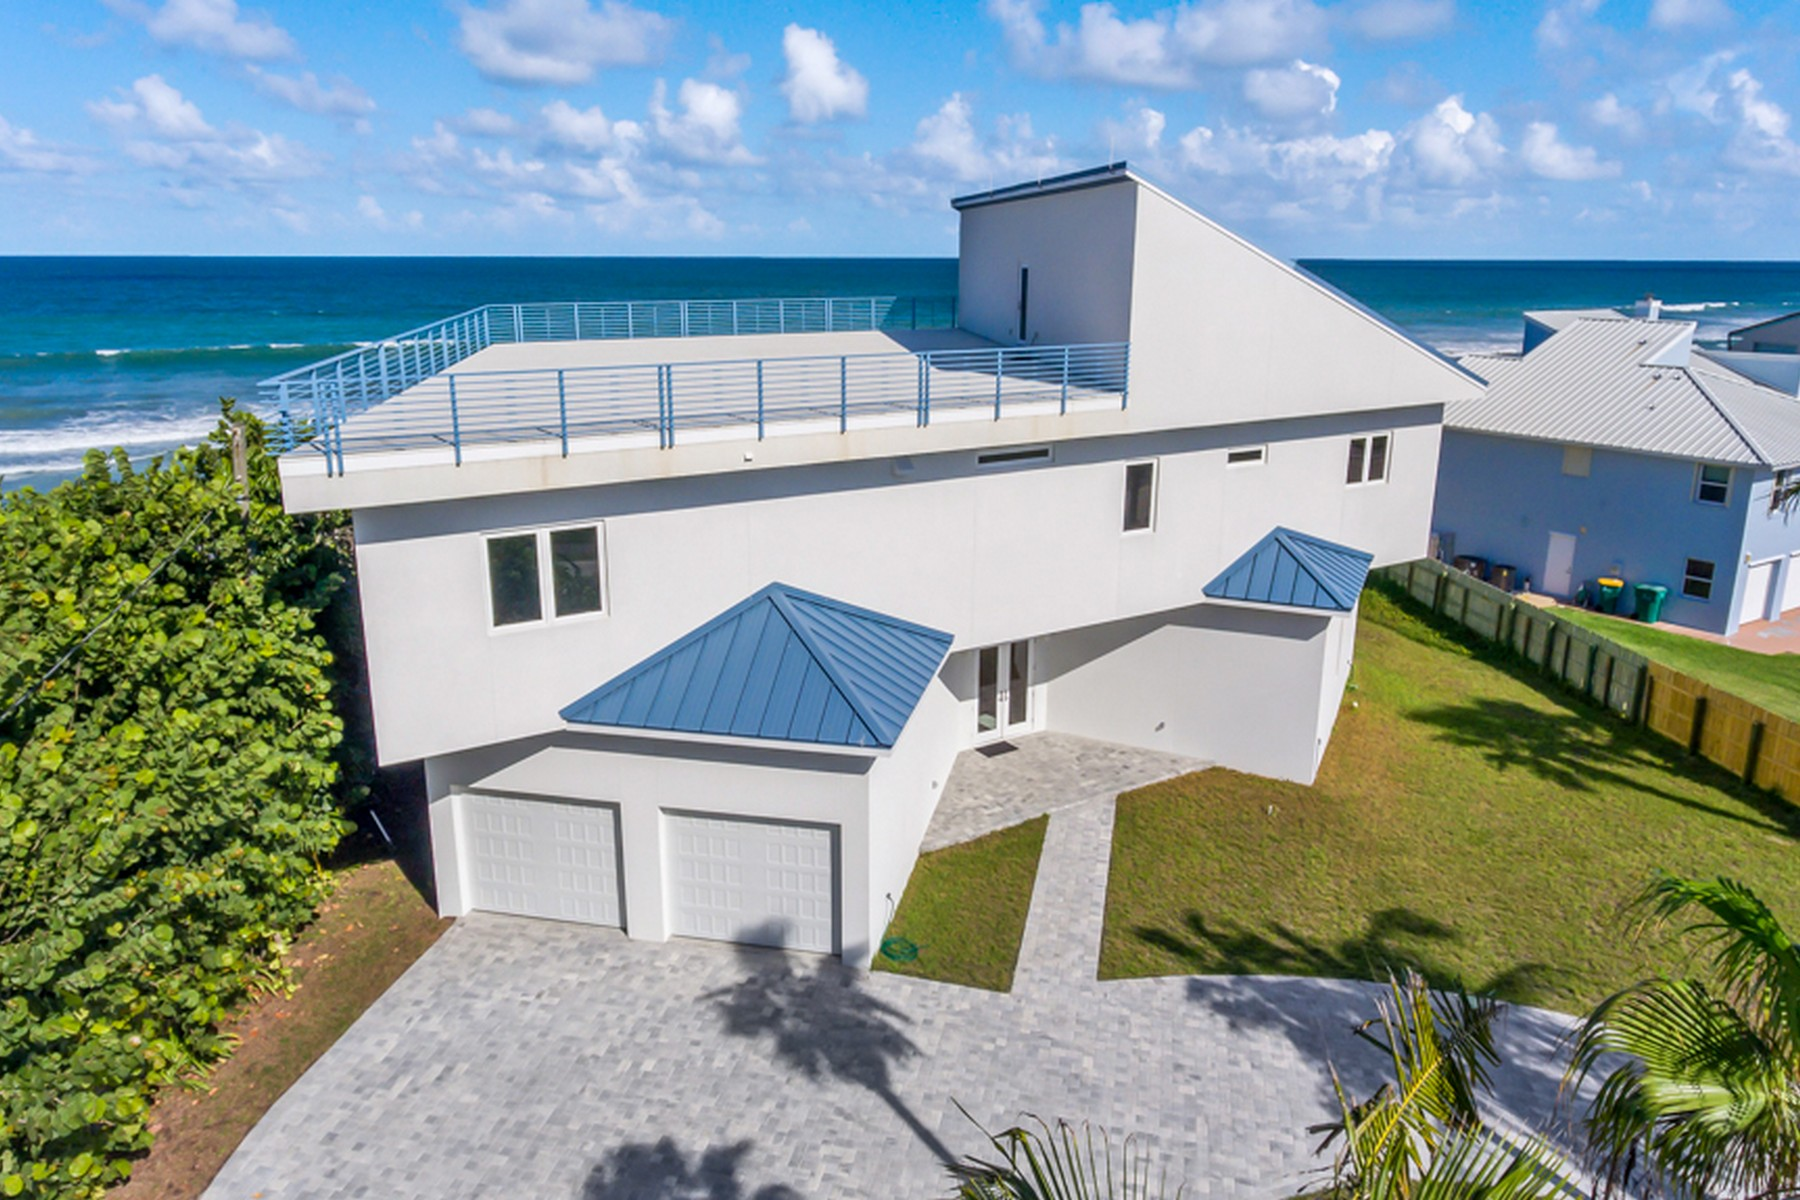 Single Family Home for Sale at Contemporary Oceanfront Home 5285 S. Highway A1A Melbourne Beach, Florida 32951 United States